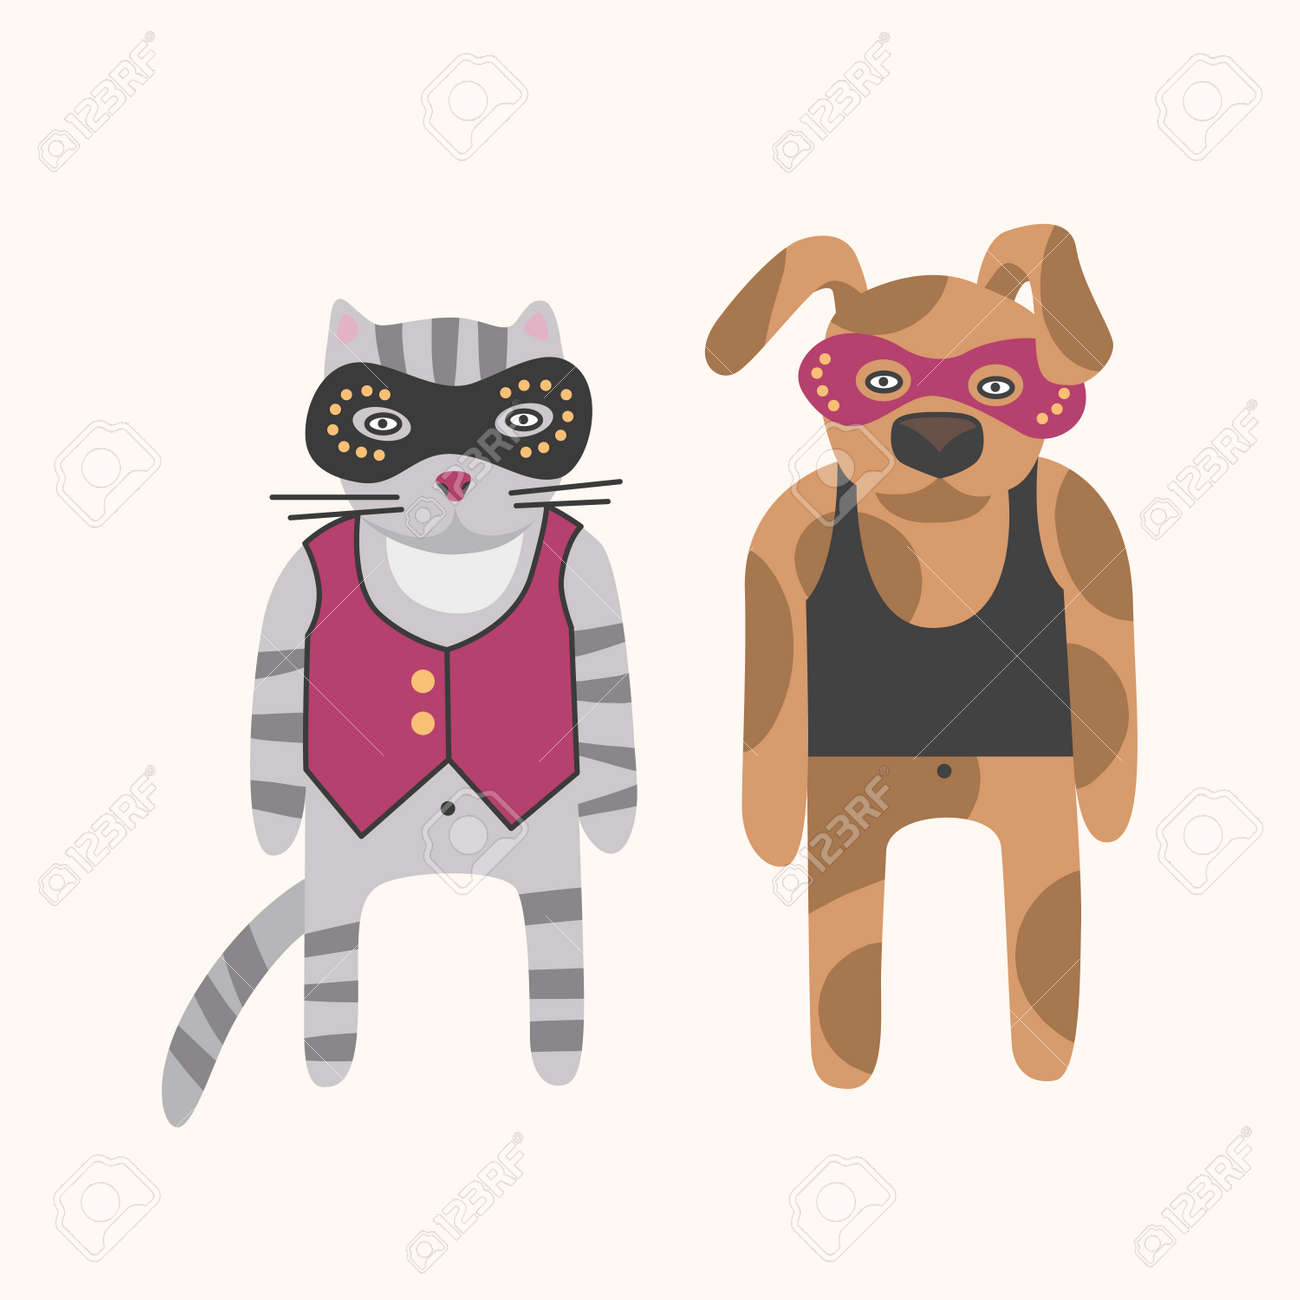 Cat and dog in carnival robber thief mask. Pets illustration on light background - 159858382